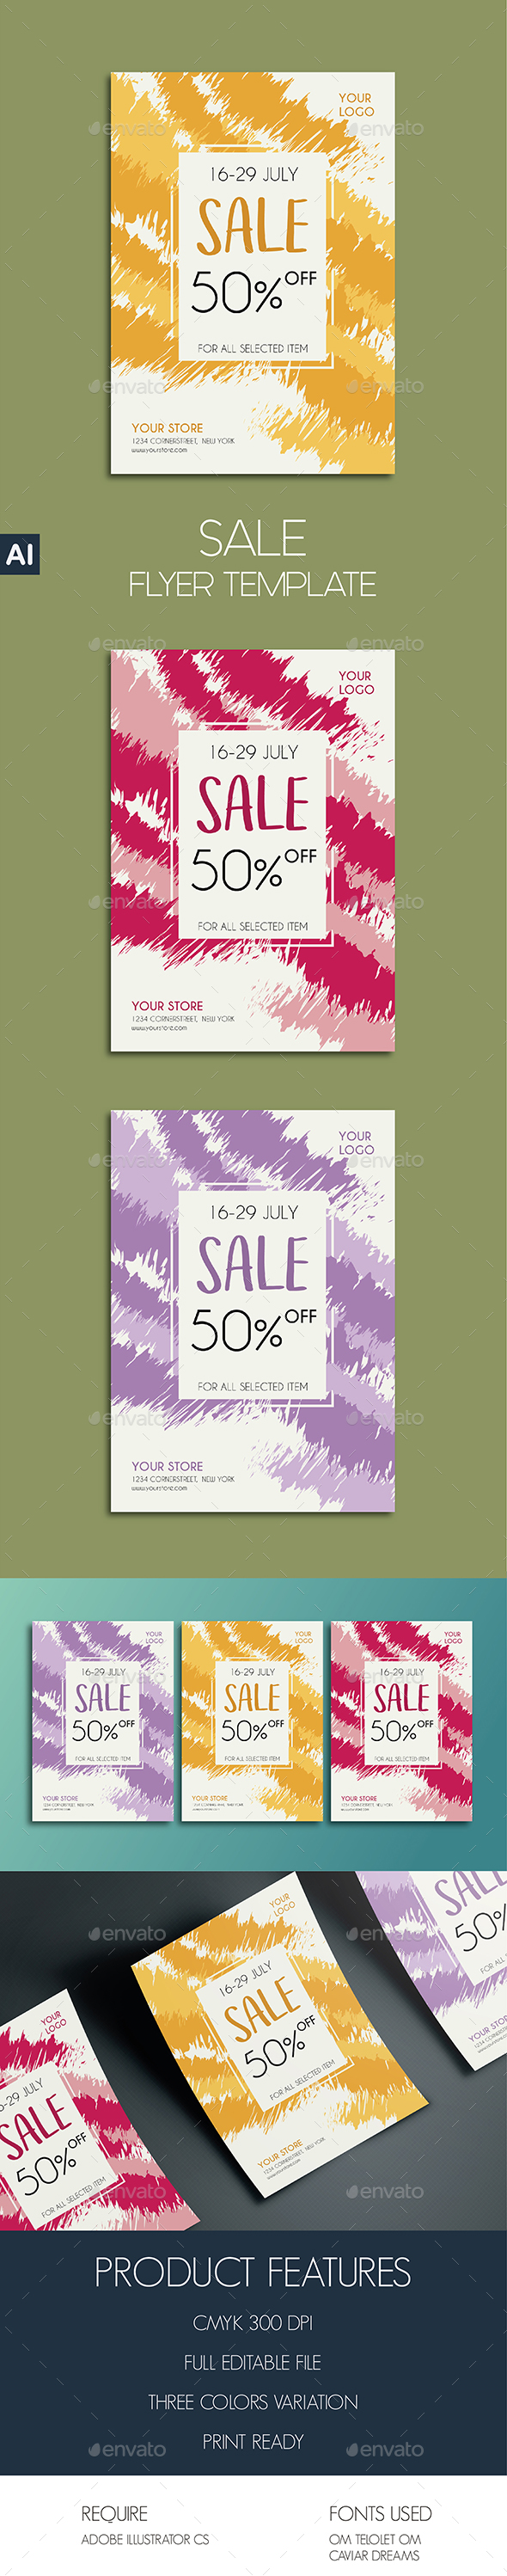 Sale Flyer Template - Commerce Flyers